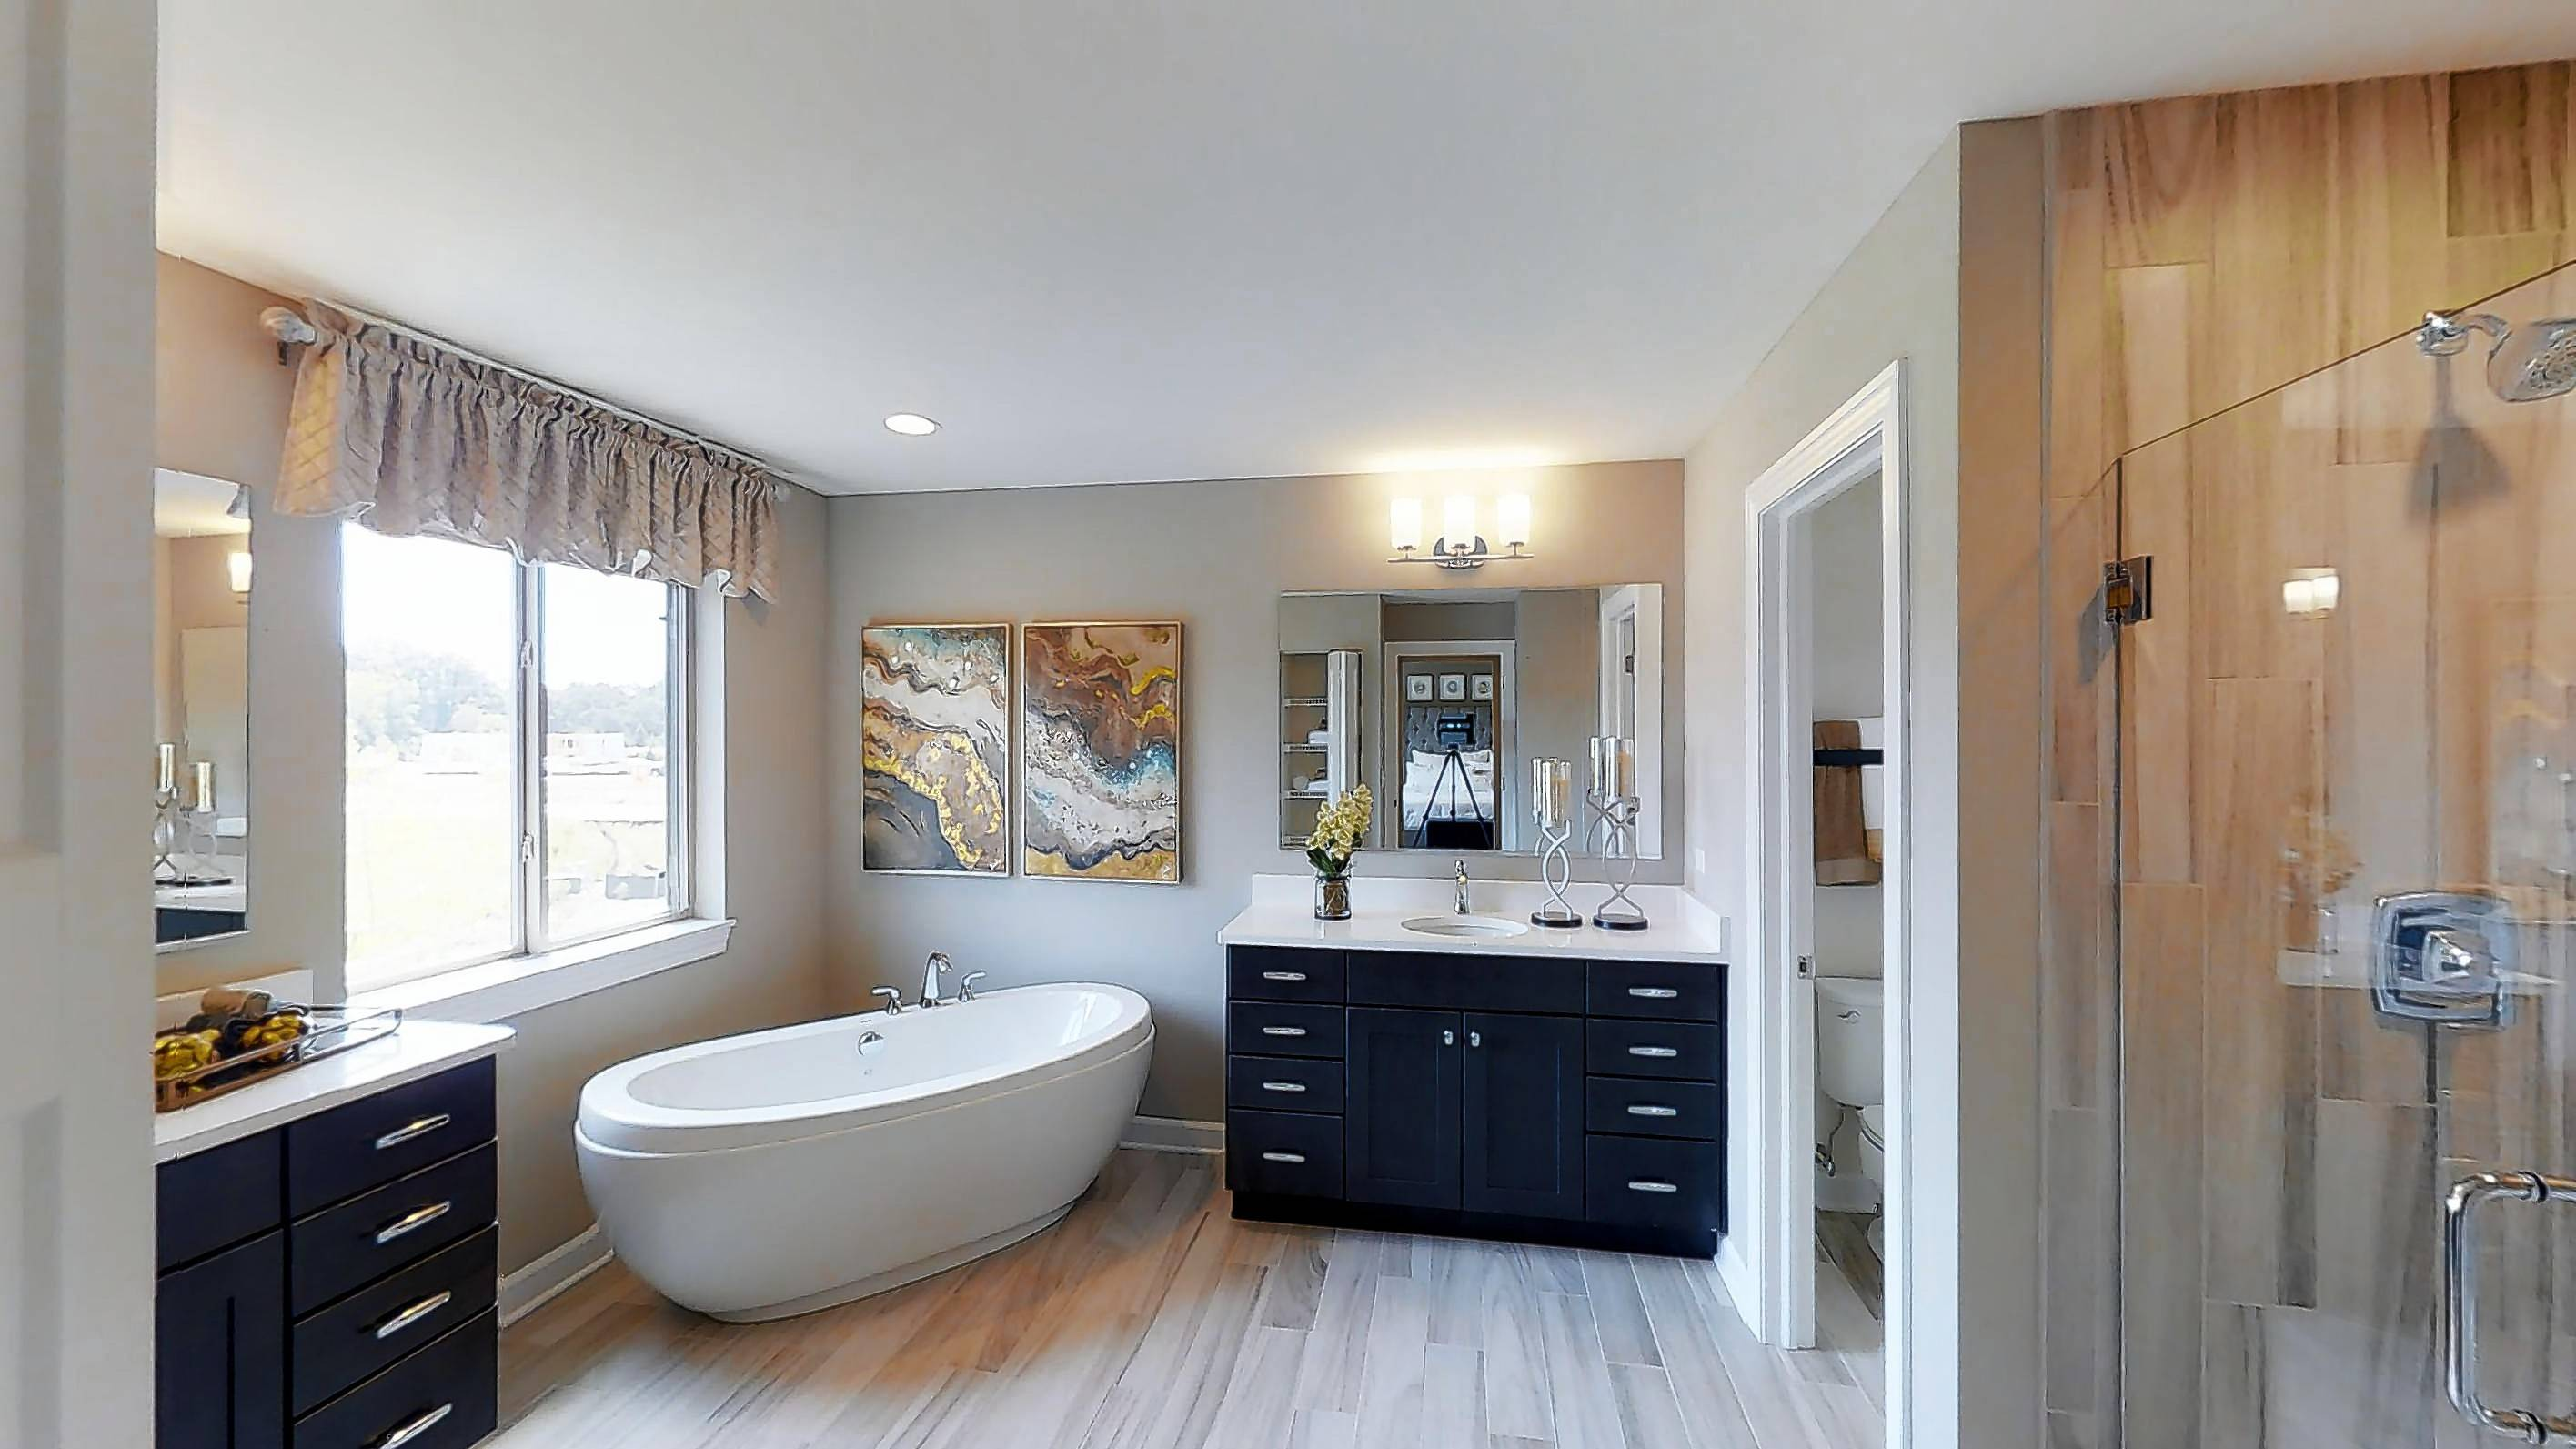 The master suite is an oasis of calm with a private luxury bath featuring a separate shower and corner soaking tub.